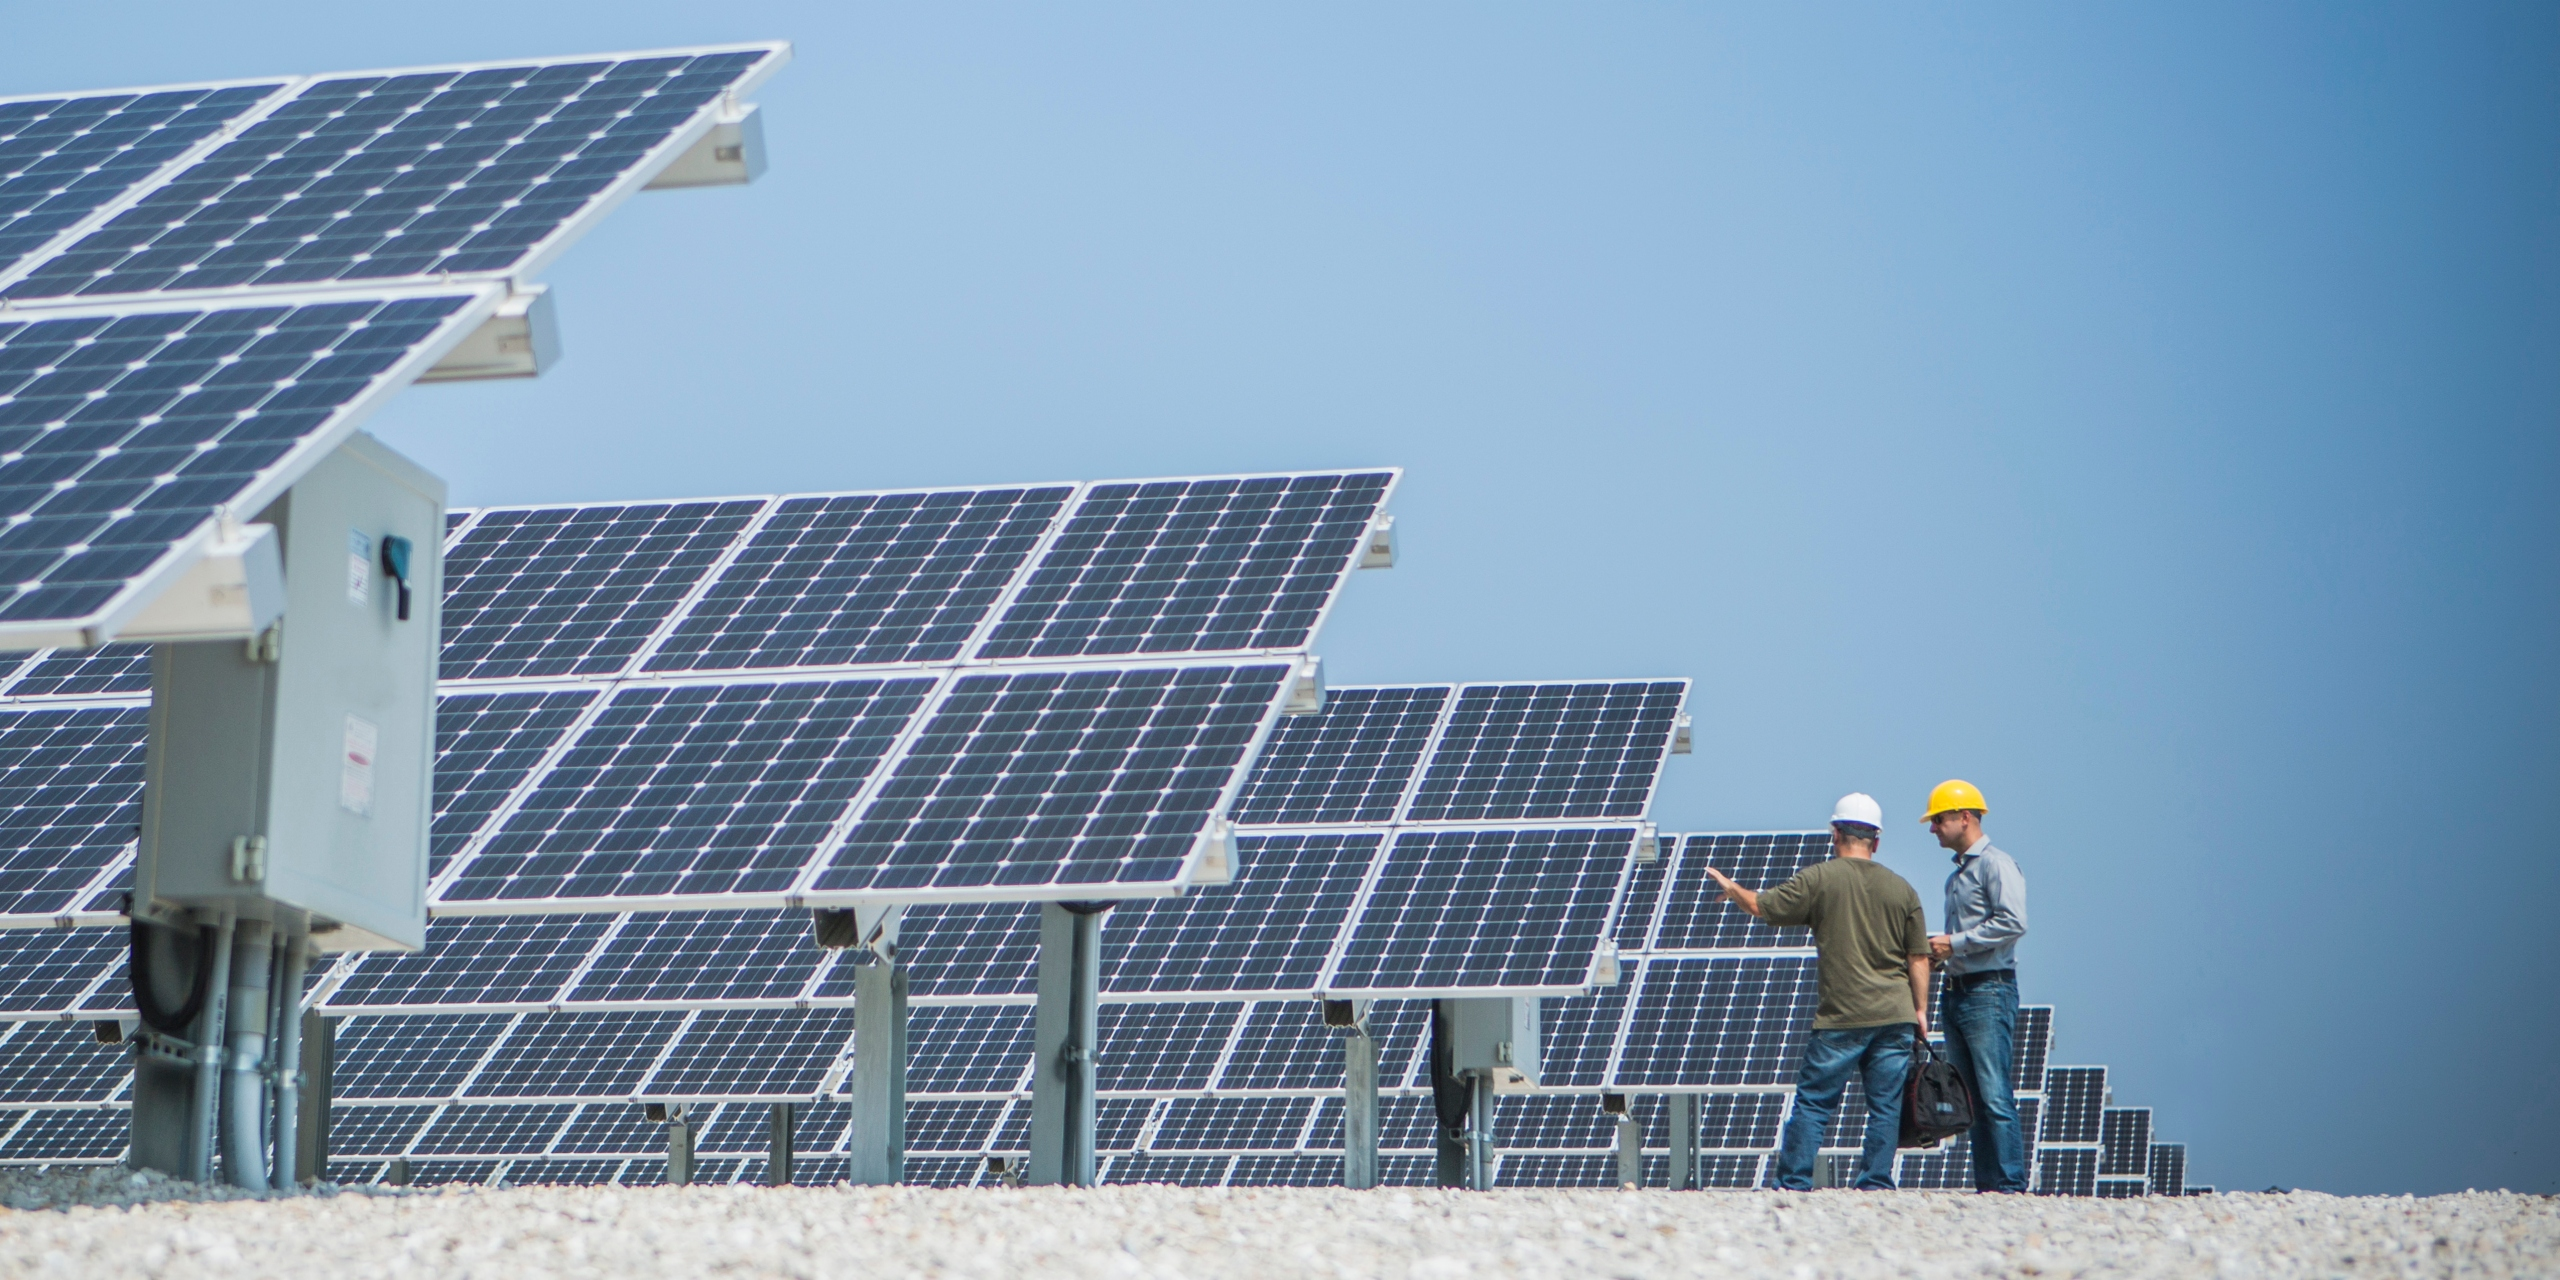 technicians near solar panels